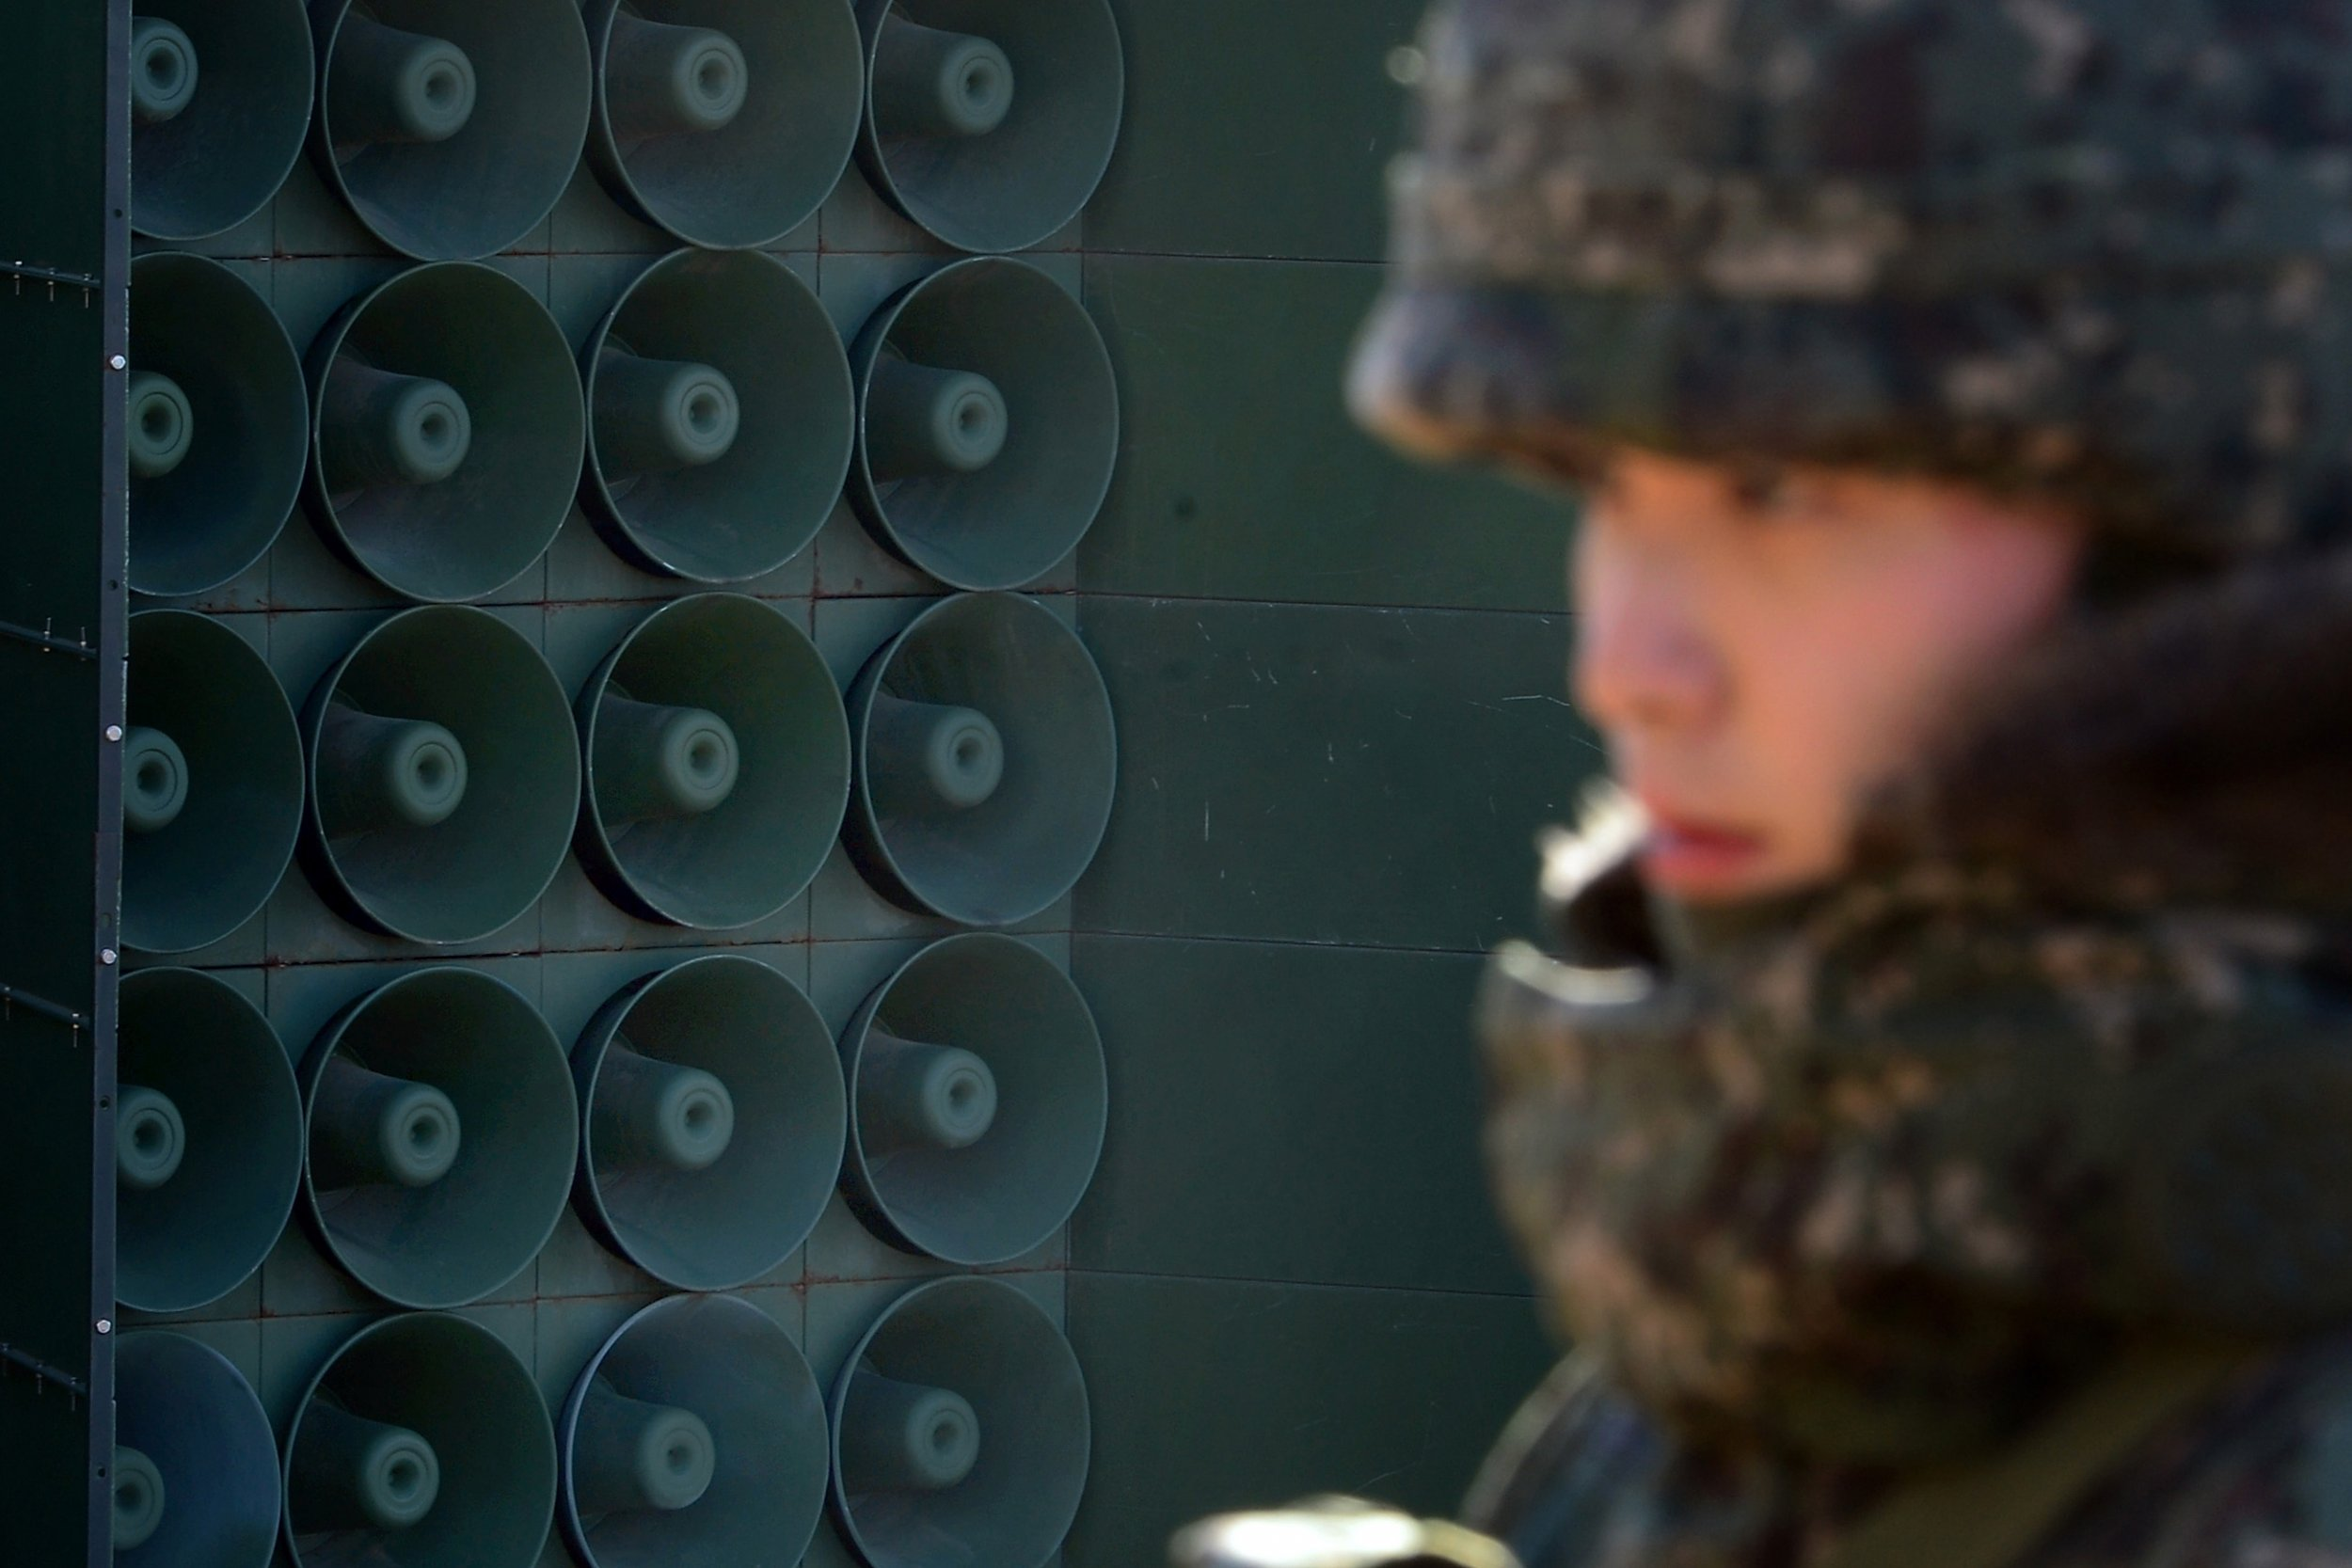 11_27_South Korea_loudspeakers